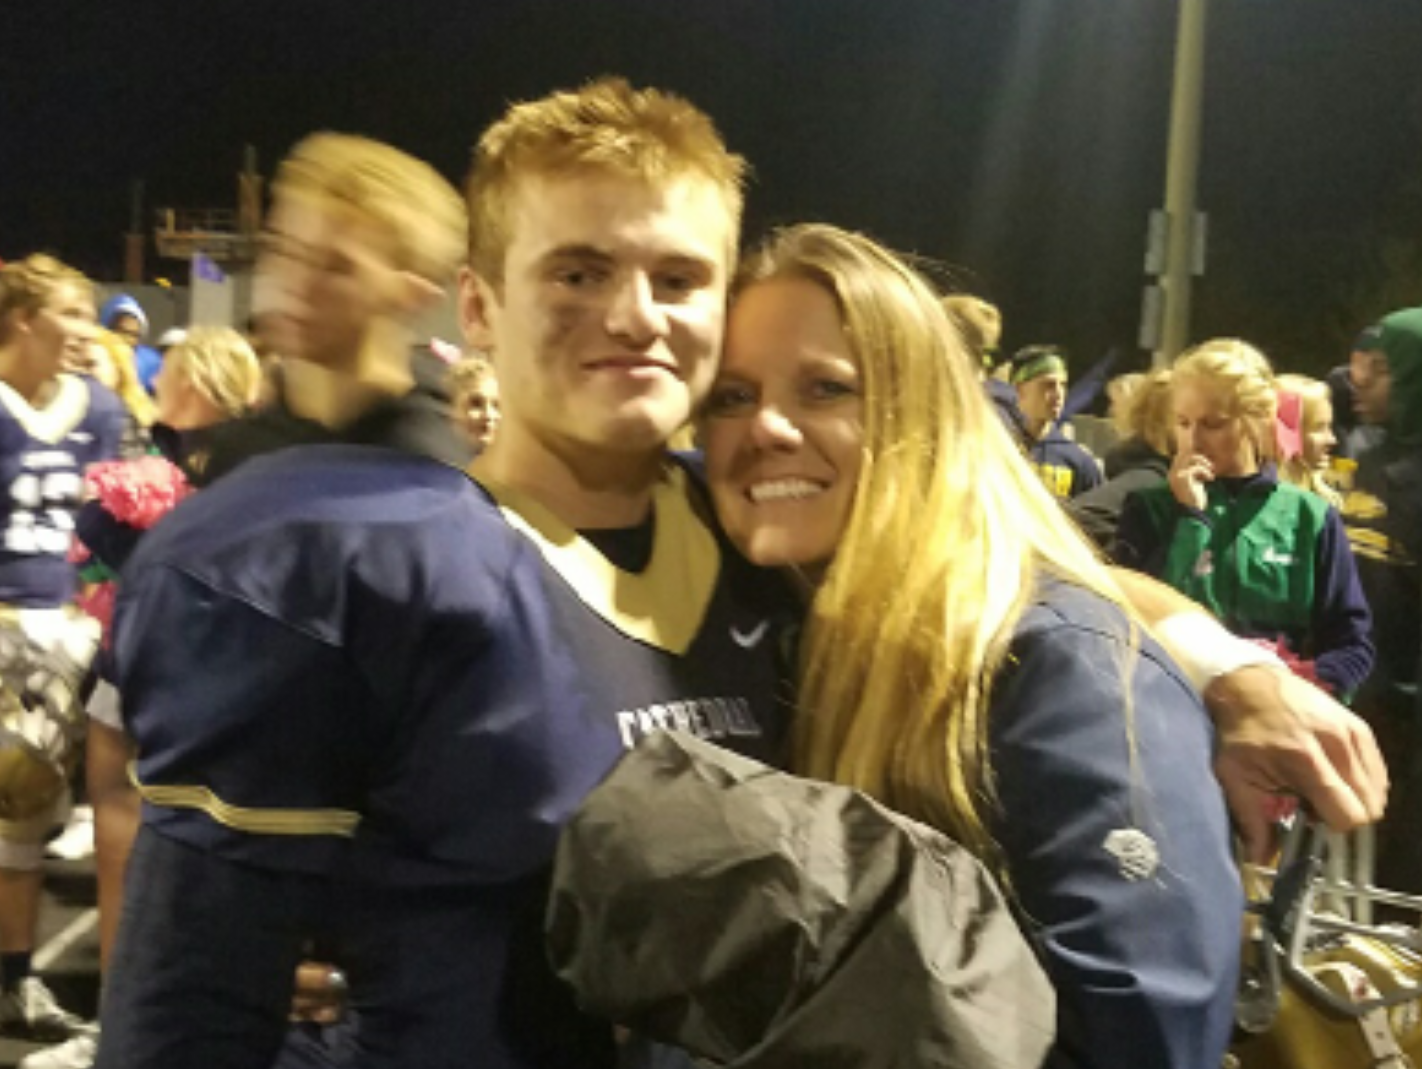 Quincy Keller plays QB for Cathedral. His mom, Stephanie, coaches basketball for Lawrence Central. The Irish face the Bears on Friday.